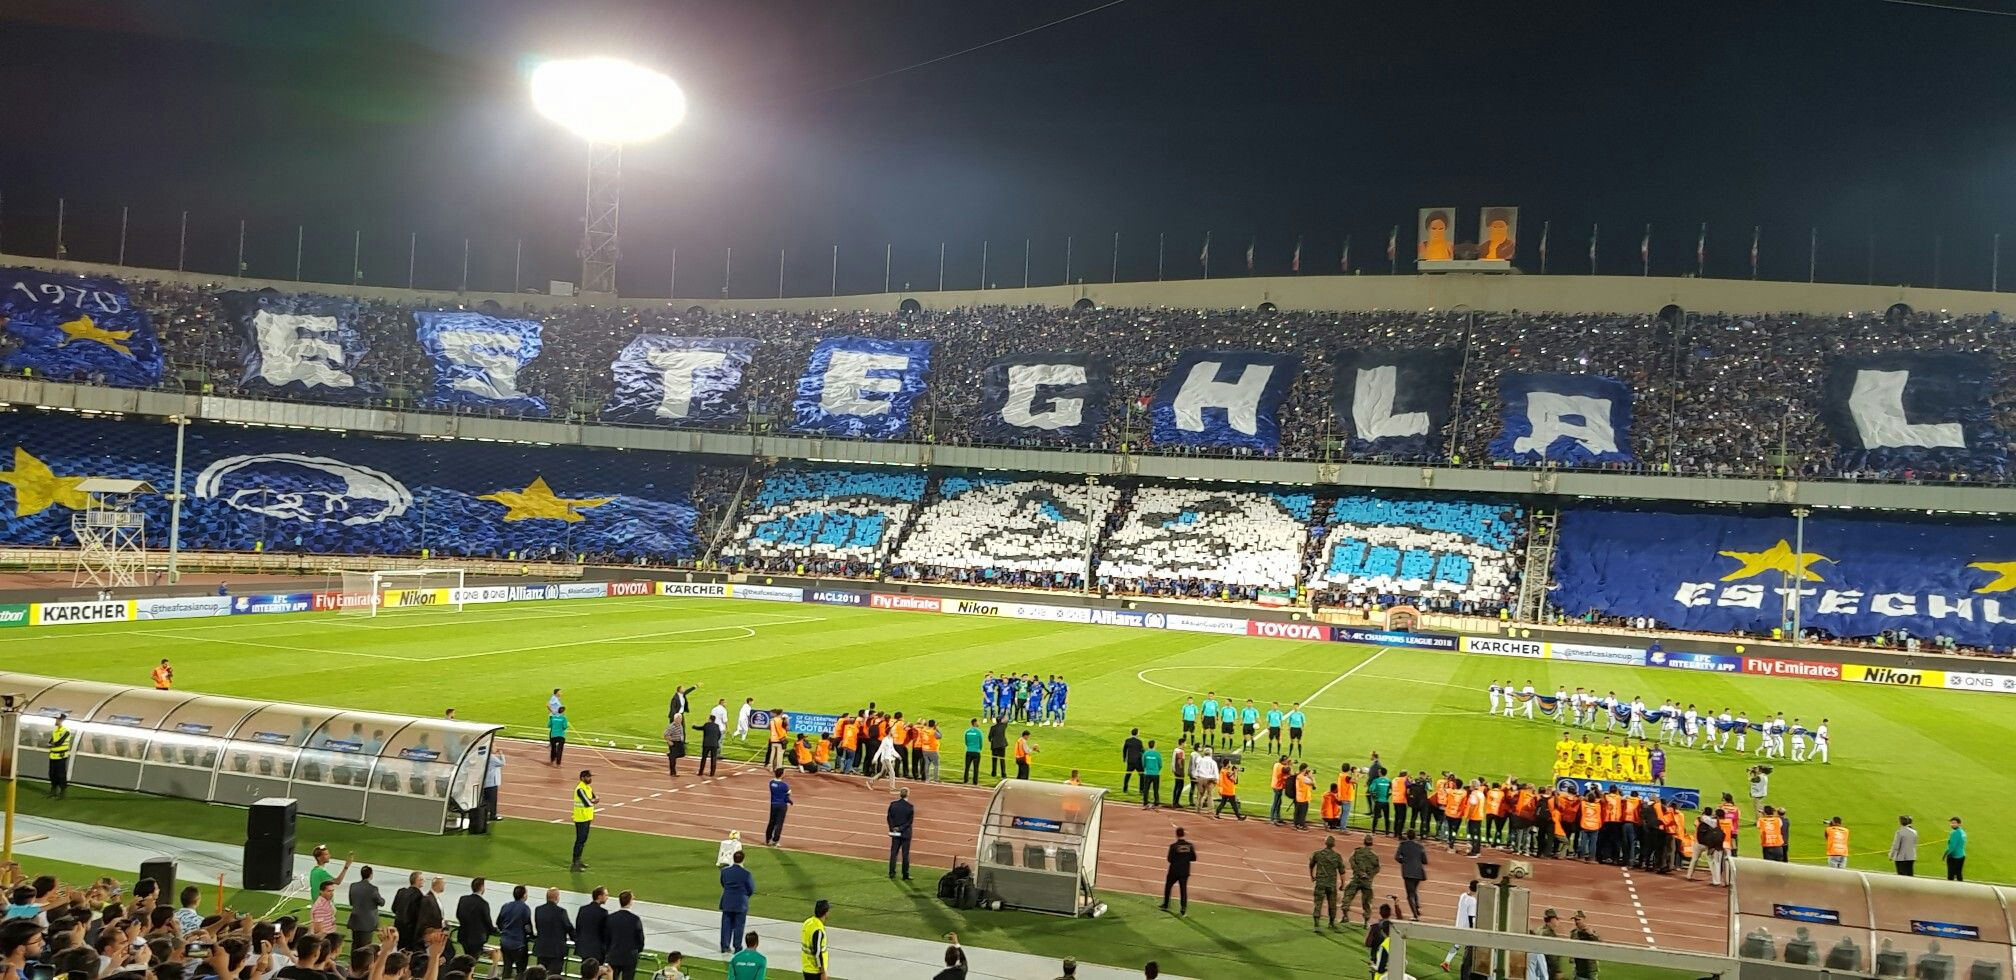 Esteghlal Fan In 2020 Soccer Field Stadium Fan